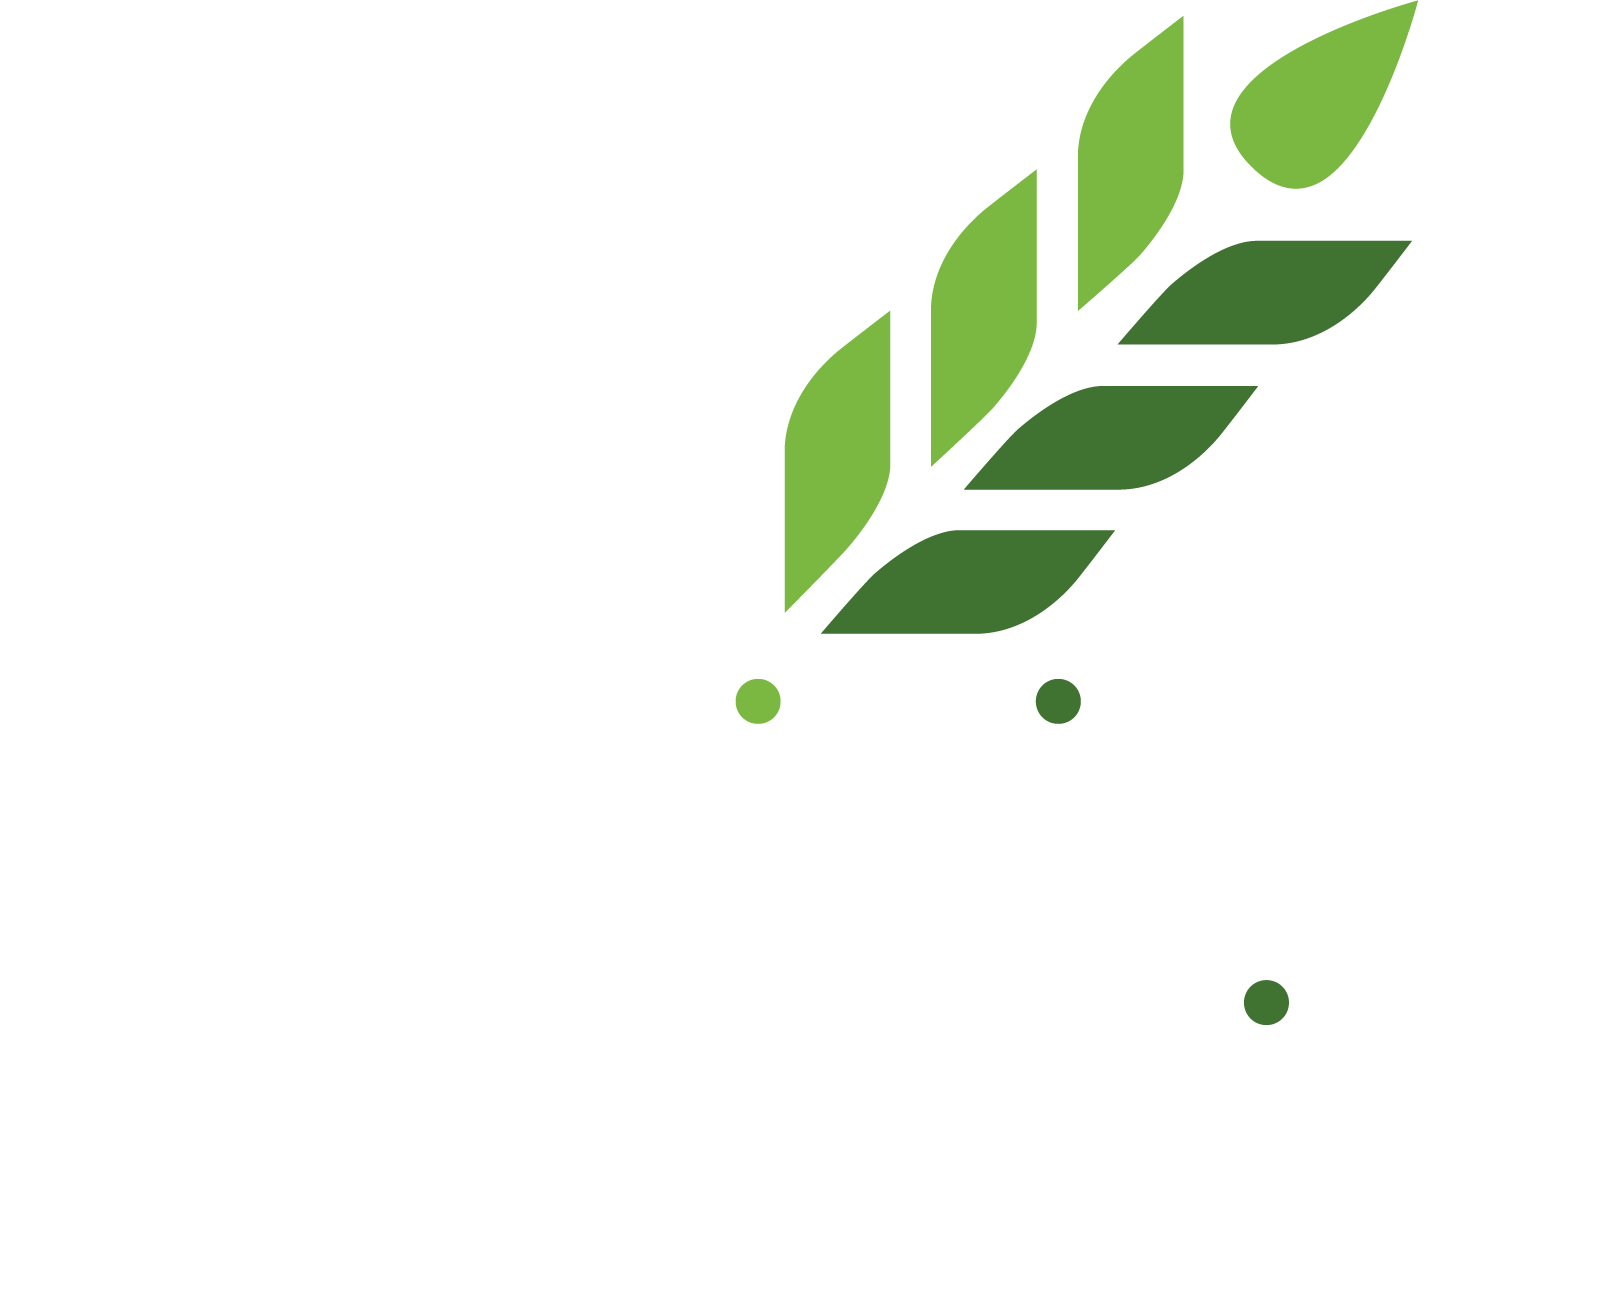 100% organic improvers and fertilizers for sandy soils of Middle East, North Africa and Asia.  Organic fertilizers for farming, landscaping, urban greenery, flower-growing, gardening.